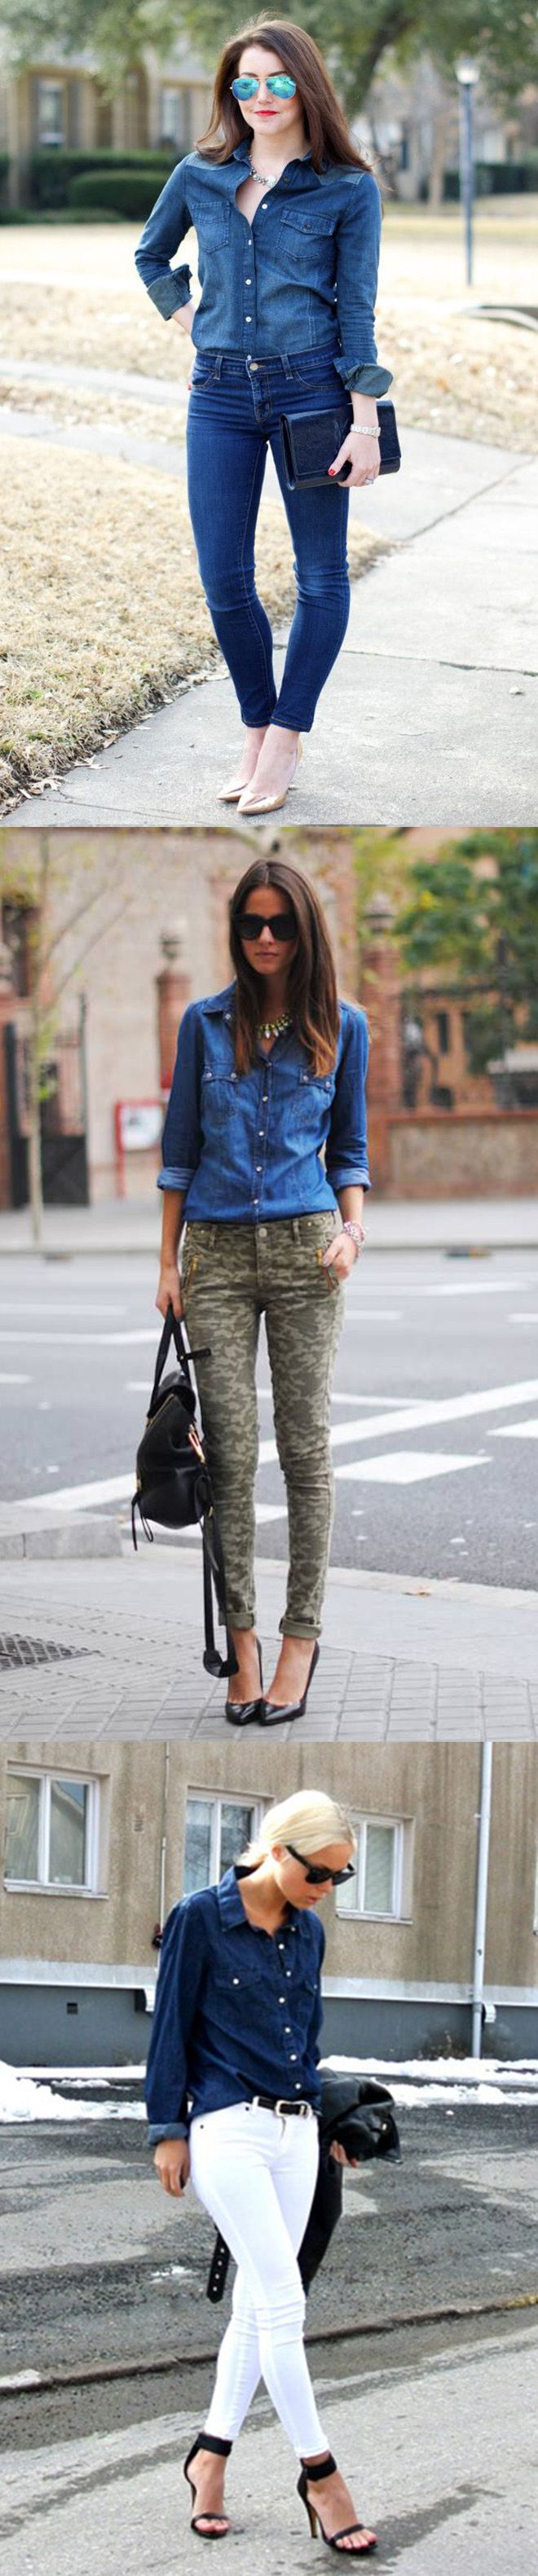 Stylish ways to wear a dark denim shirt! #fashion